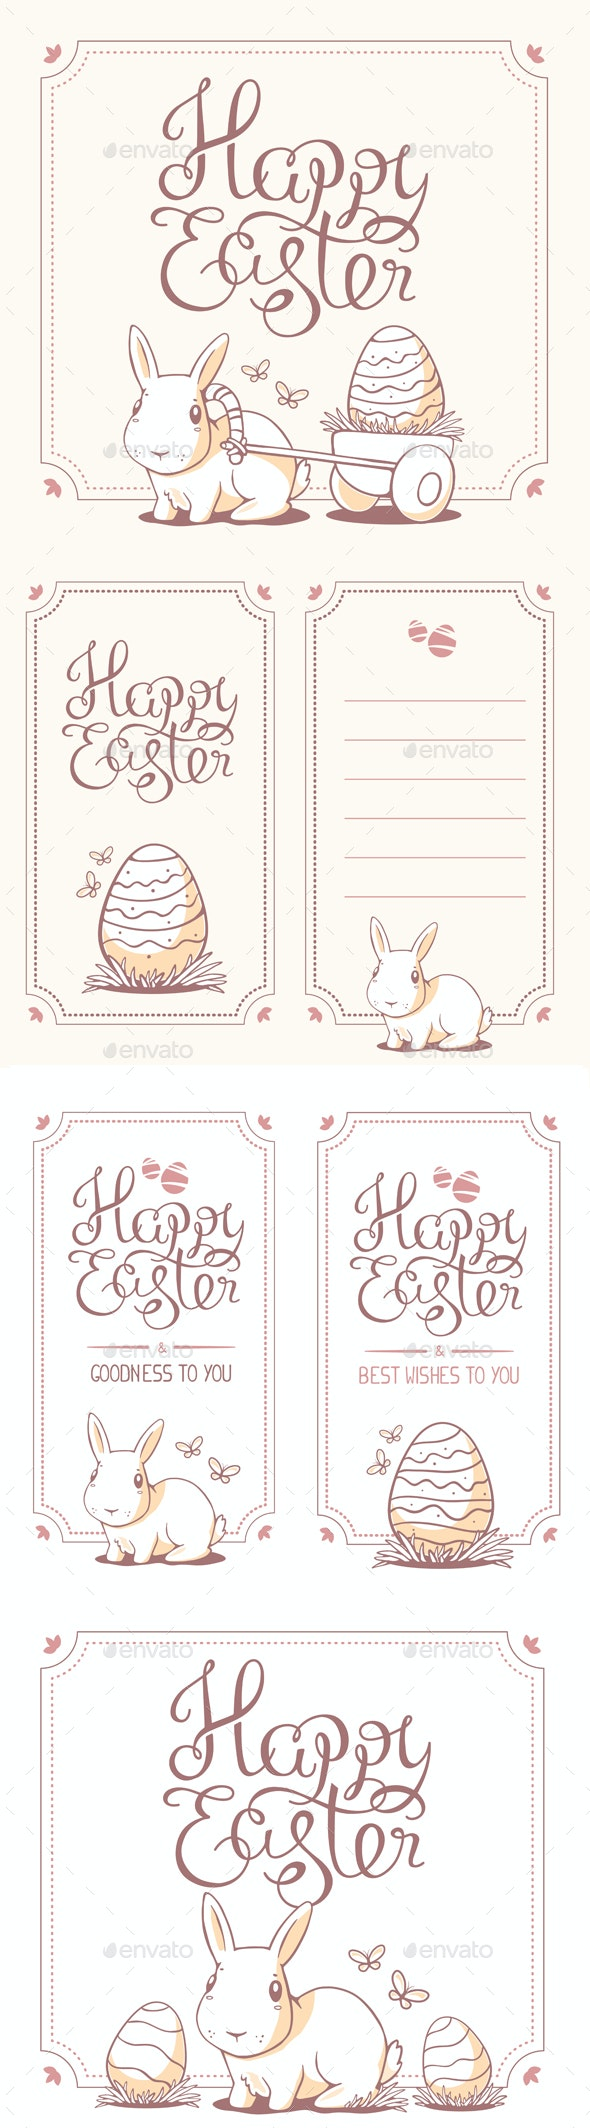 Collection of Happy Easter Greeting Cards - Miscellaneous Seasons/Holidays